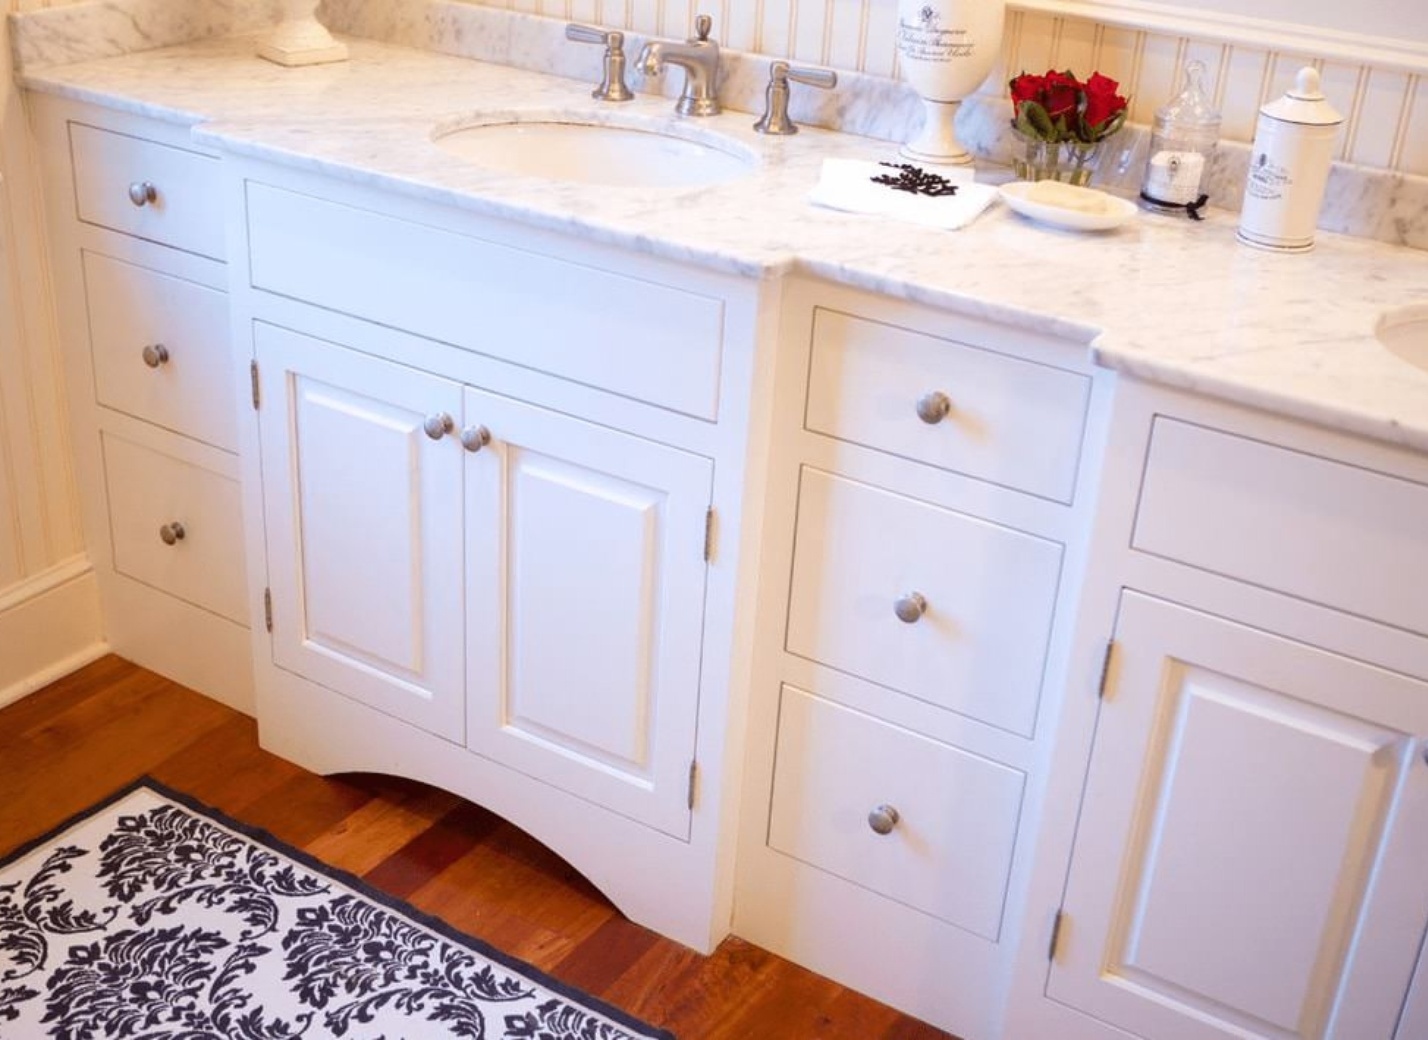 Kitchen Cabinets & Bathroom Cabinets in New Jersey